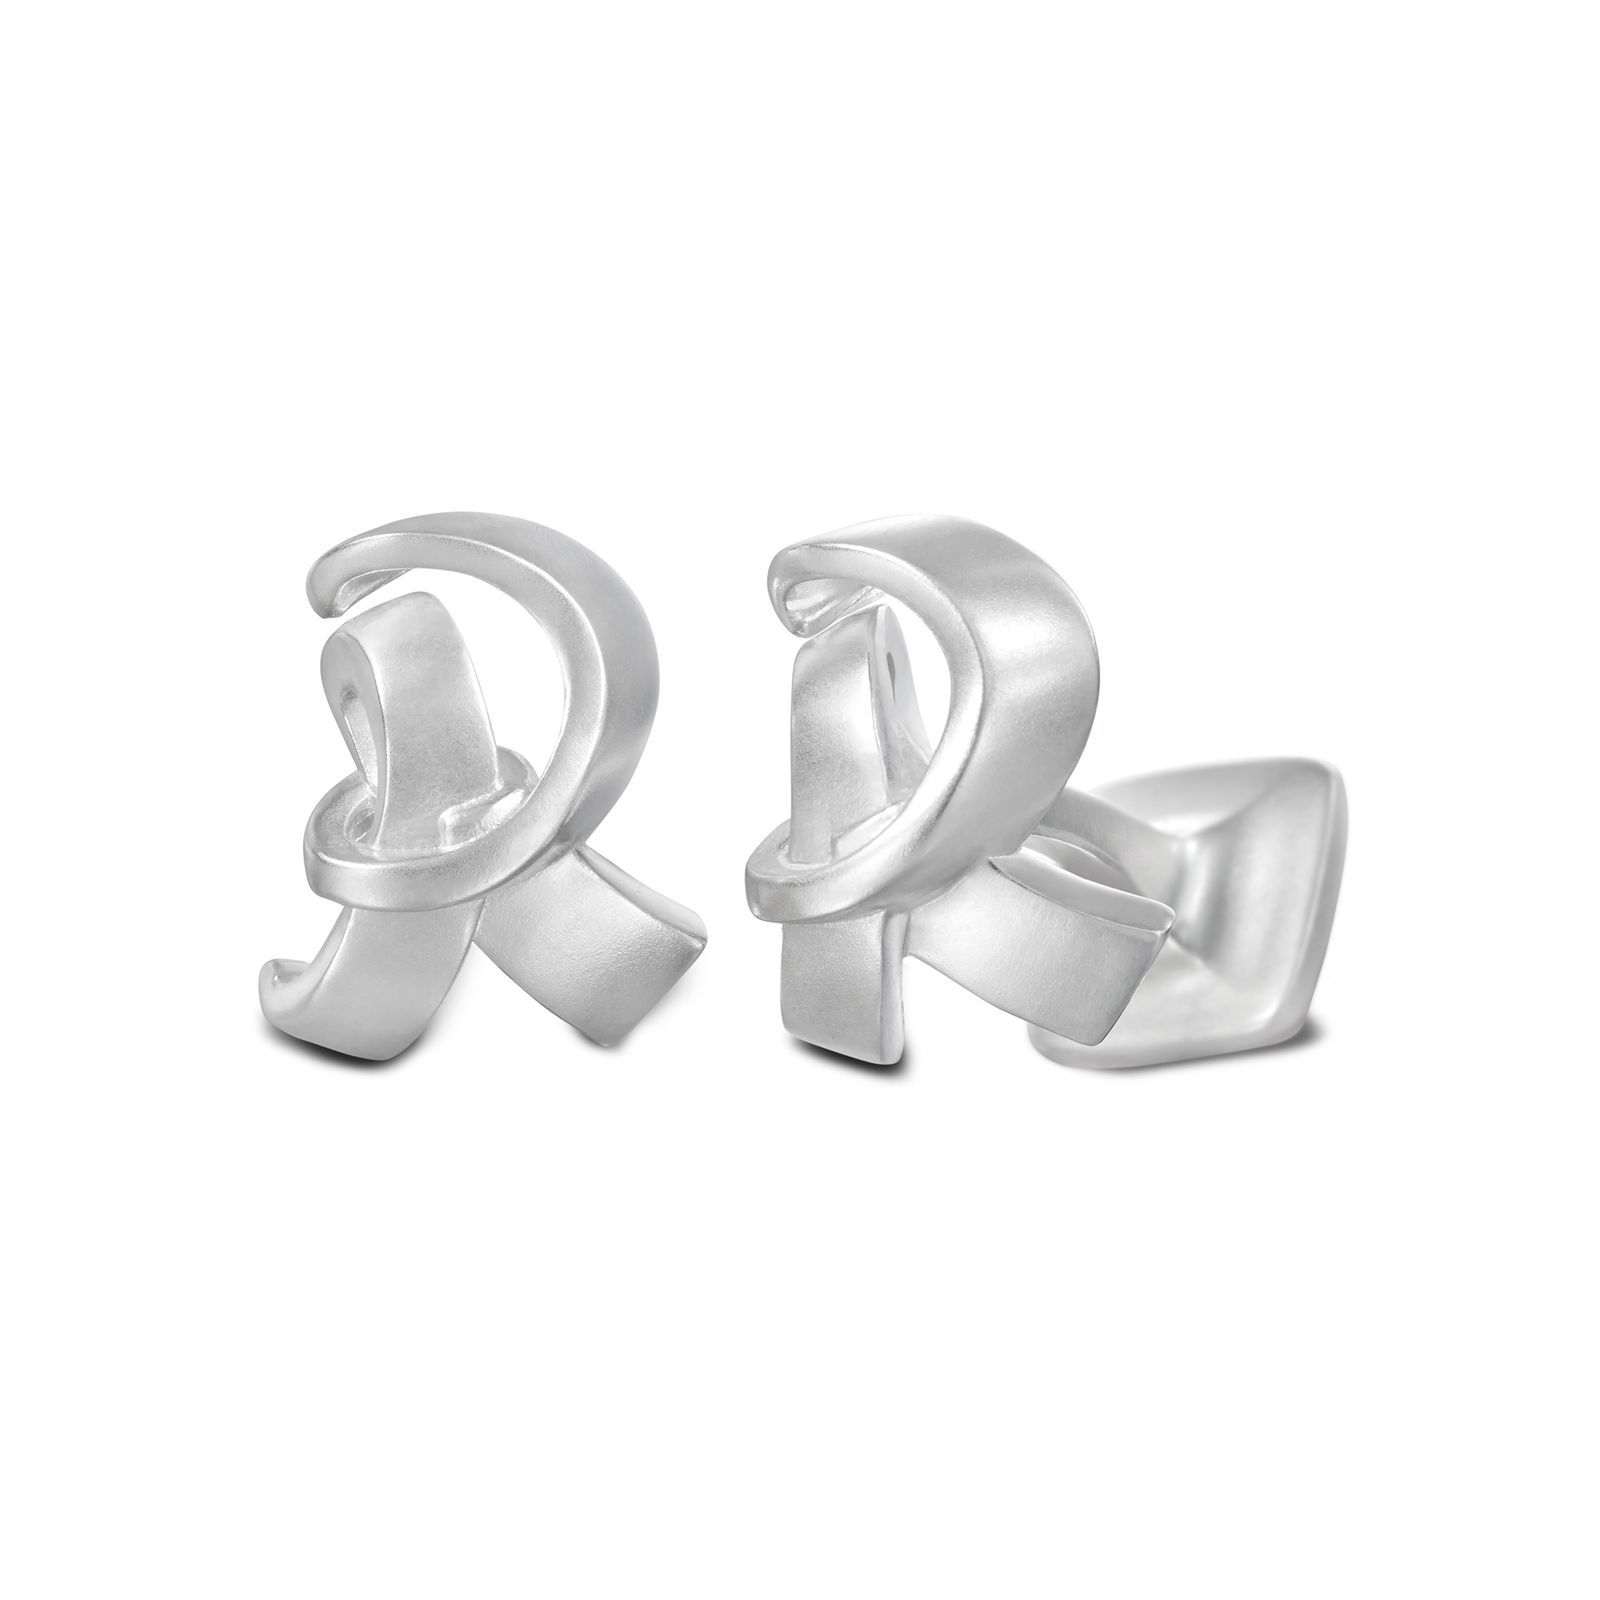 Signature Sterling Silver Cuff Link In Mist Finish Letter R